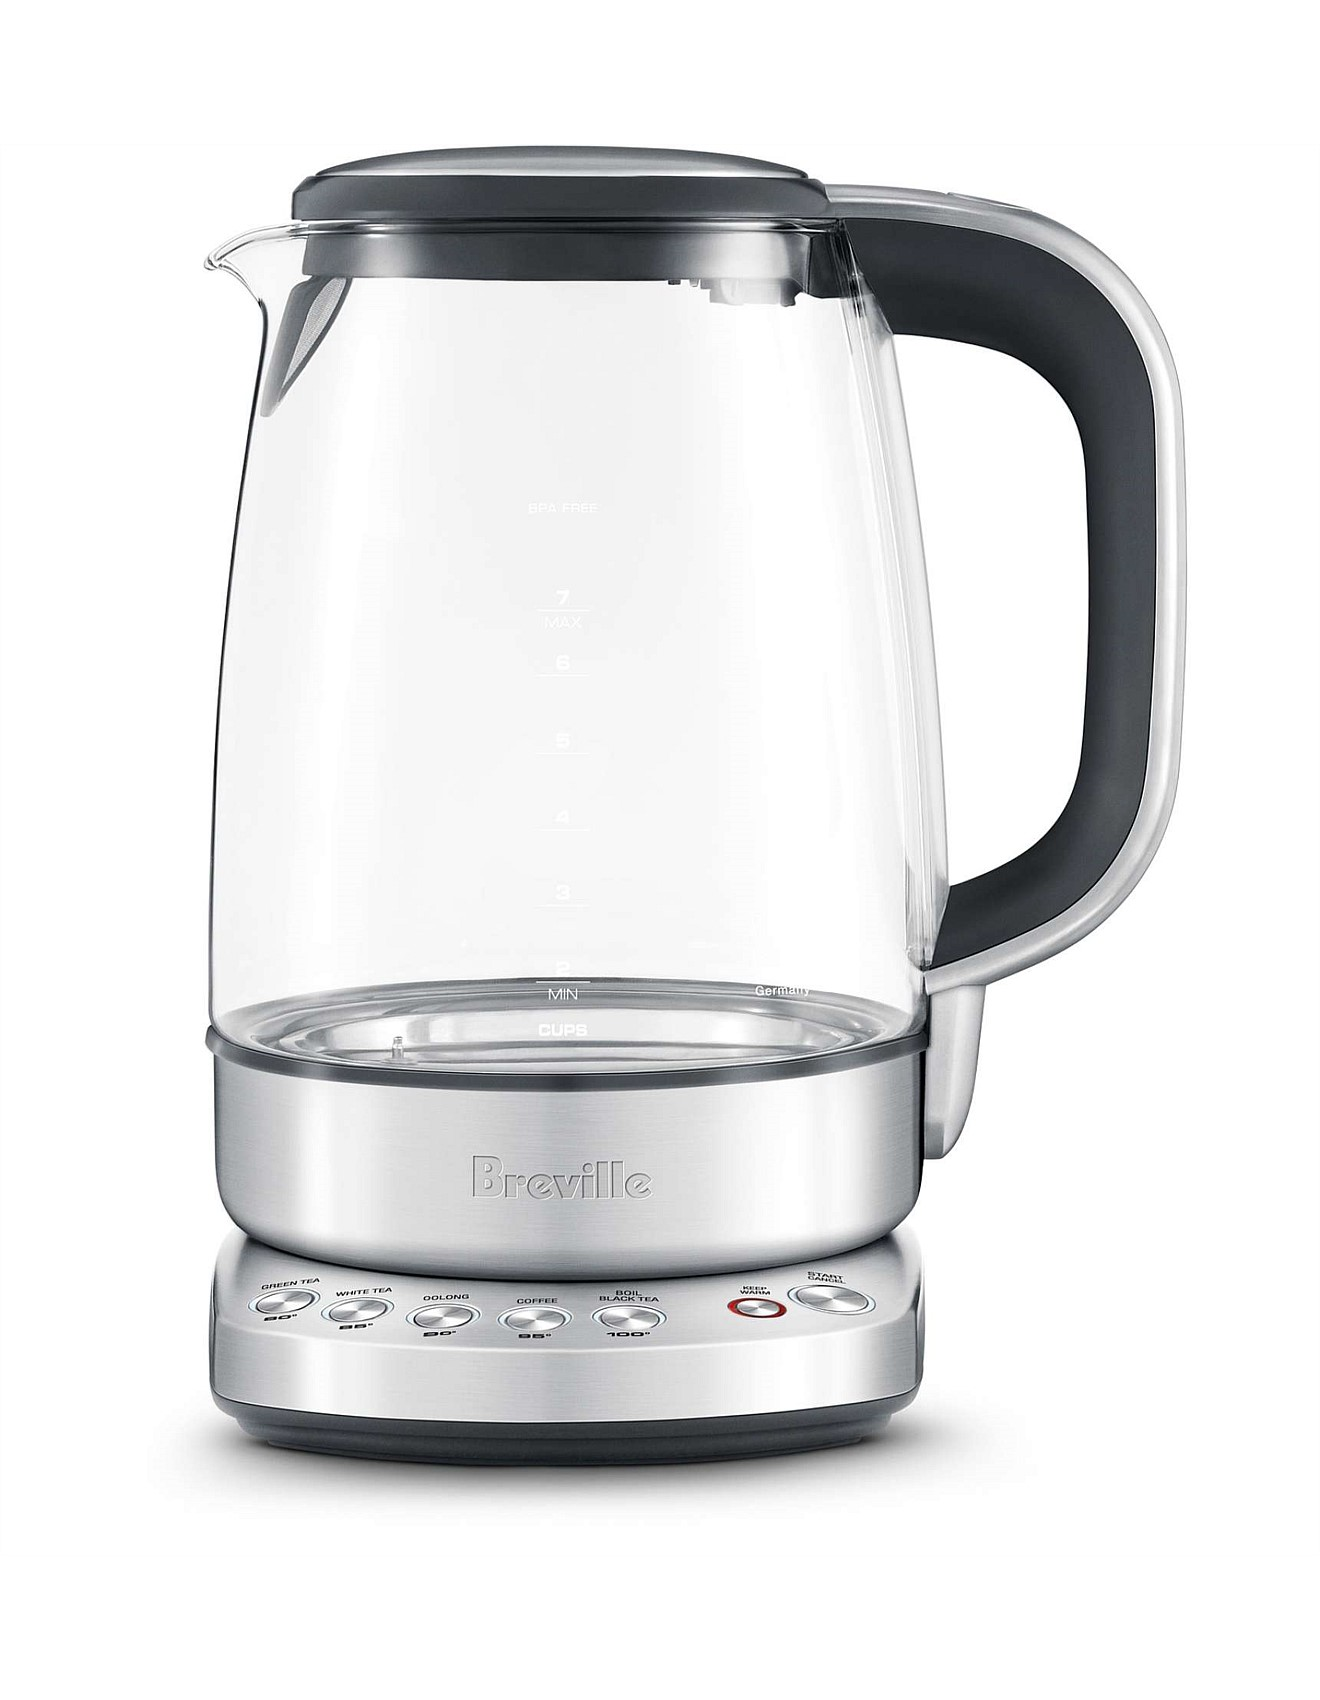 Bke830 The Smart Crystal Clear Kettle